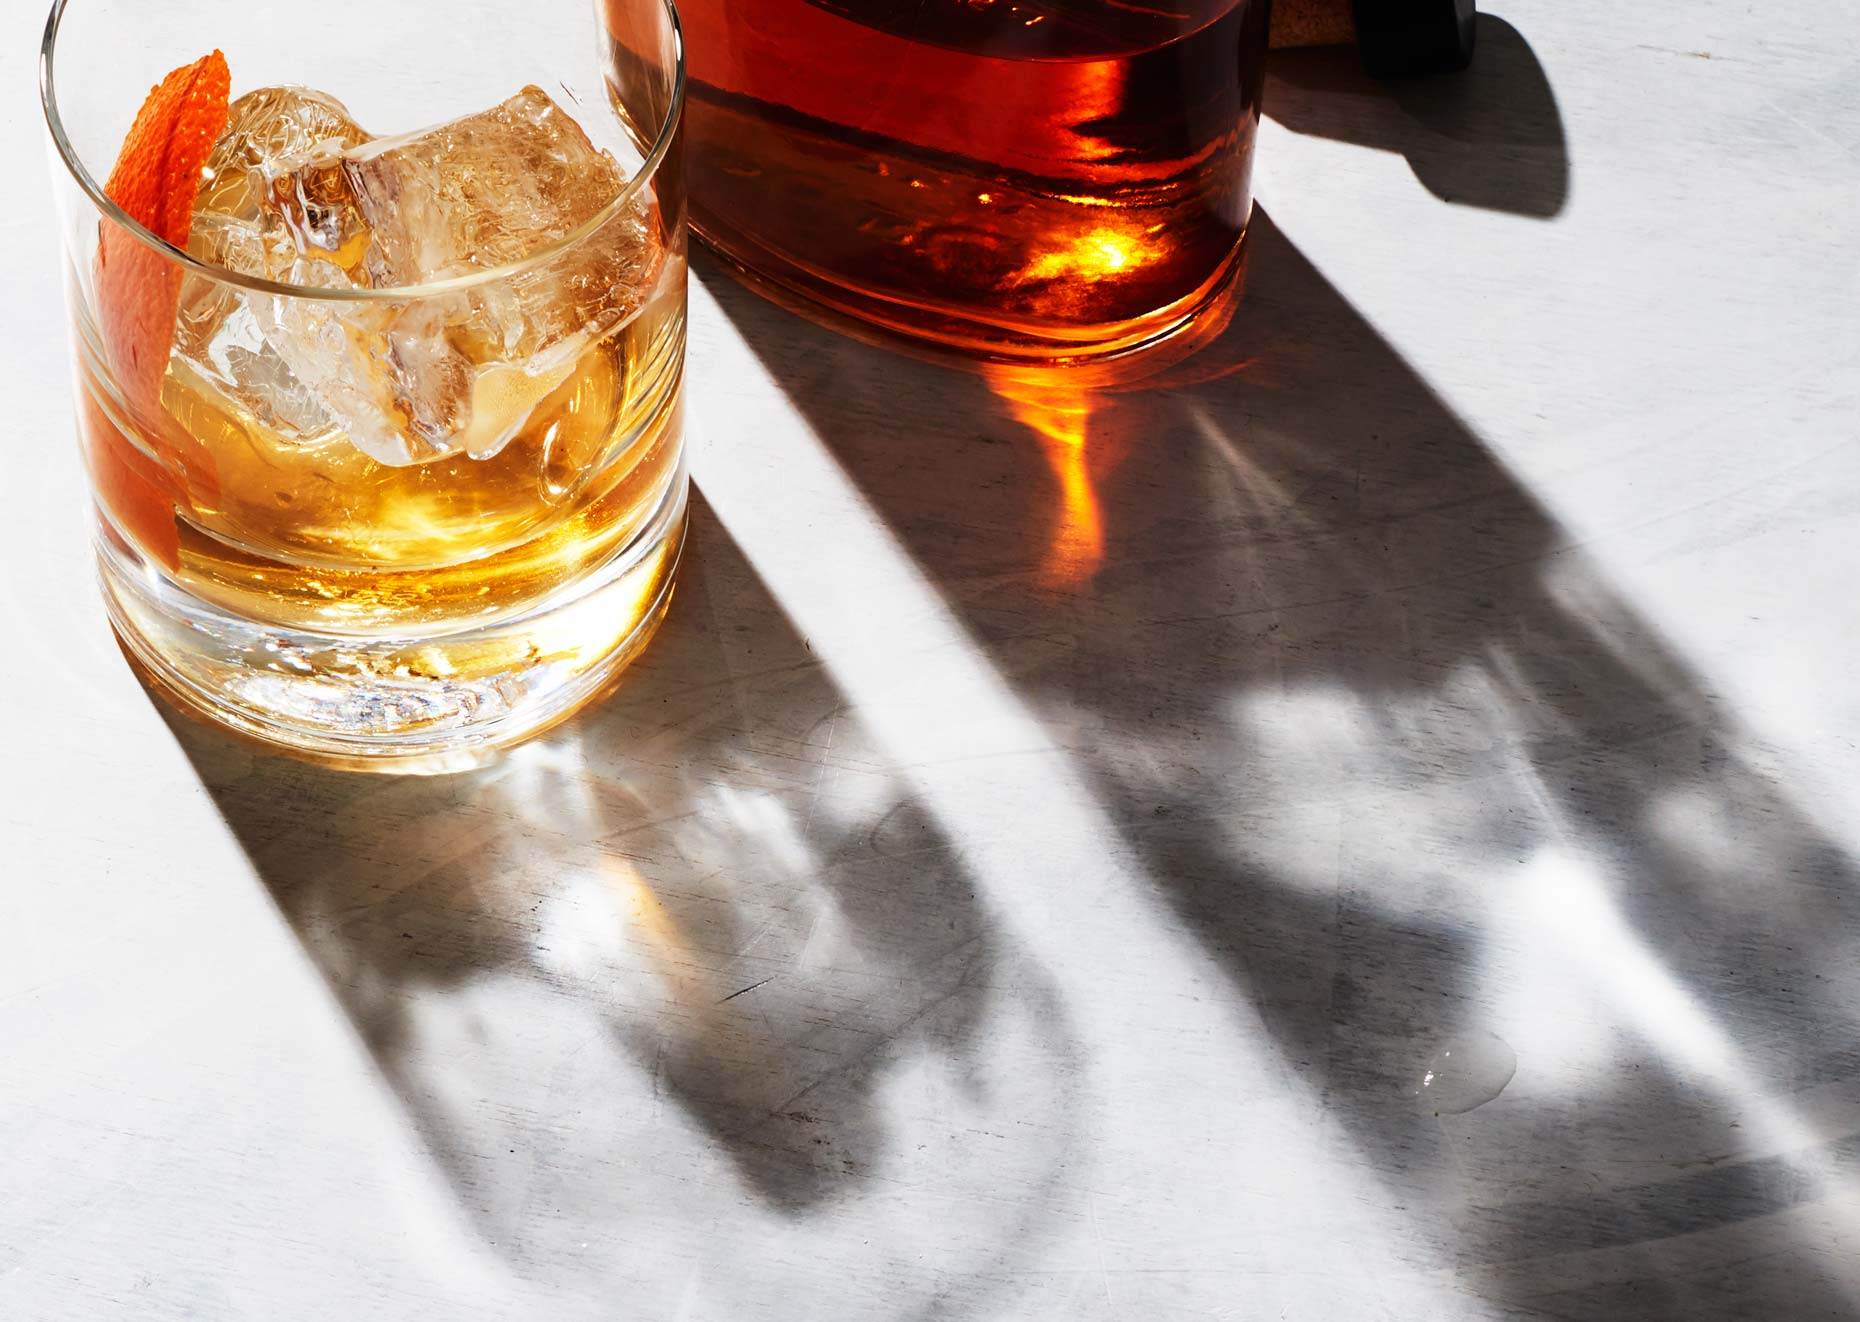 Glass of bourbon next to bottle on white surface, photo by Food and Beverage Photographer Adrian Mueller, New York